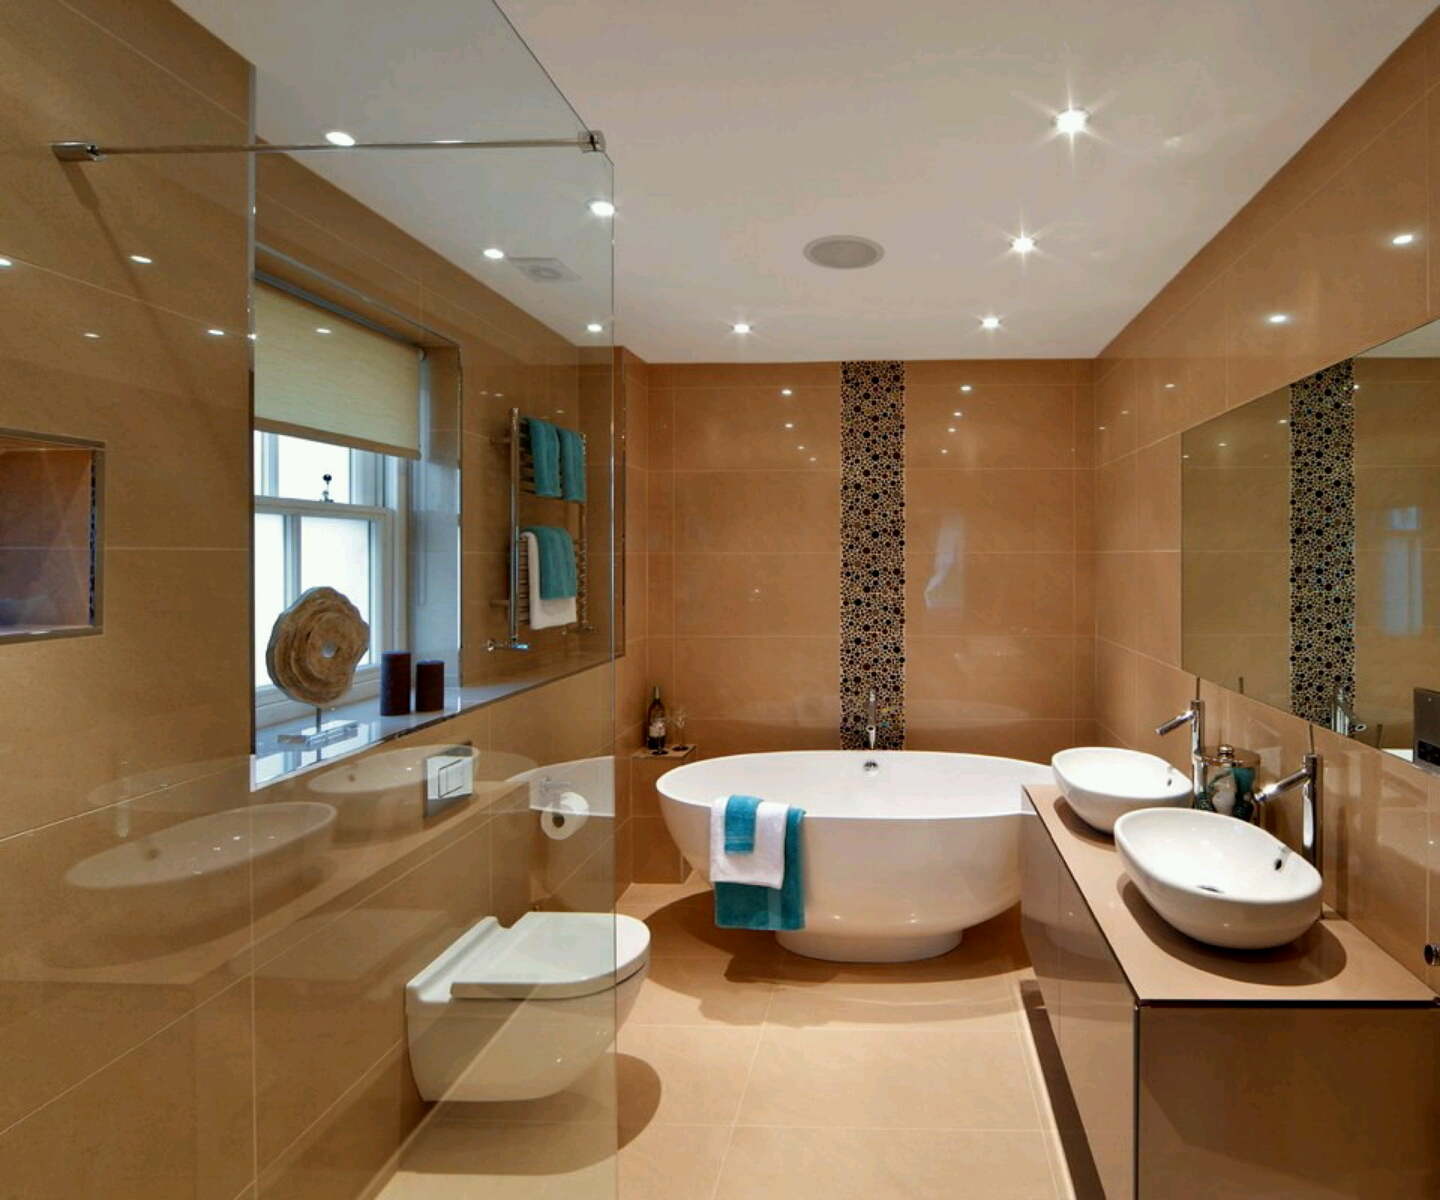 25 small but luxury bathroom design ideas Bathroom remodel design